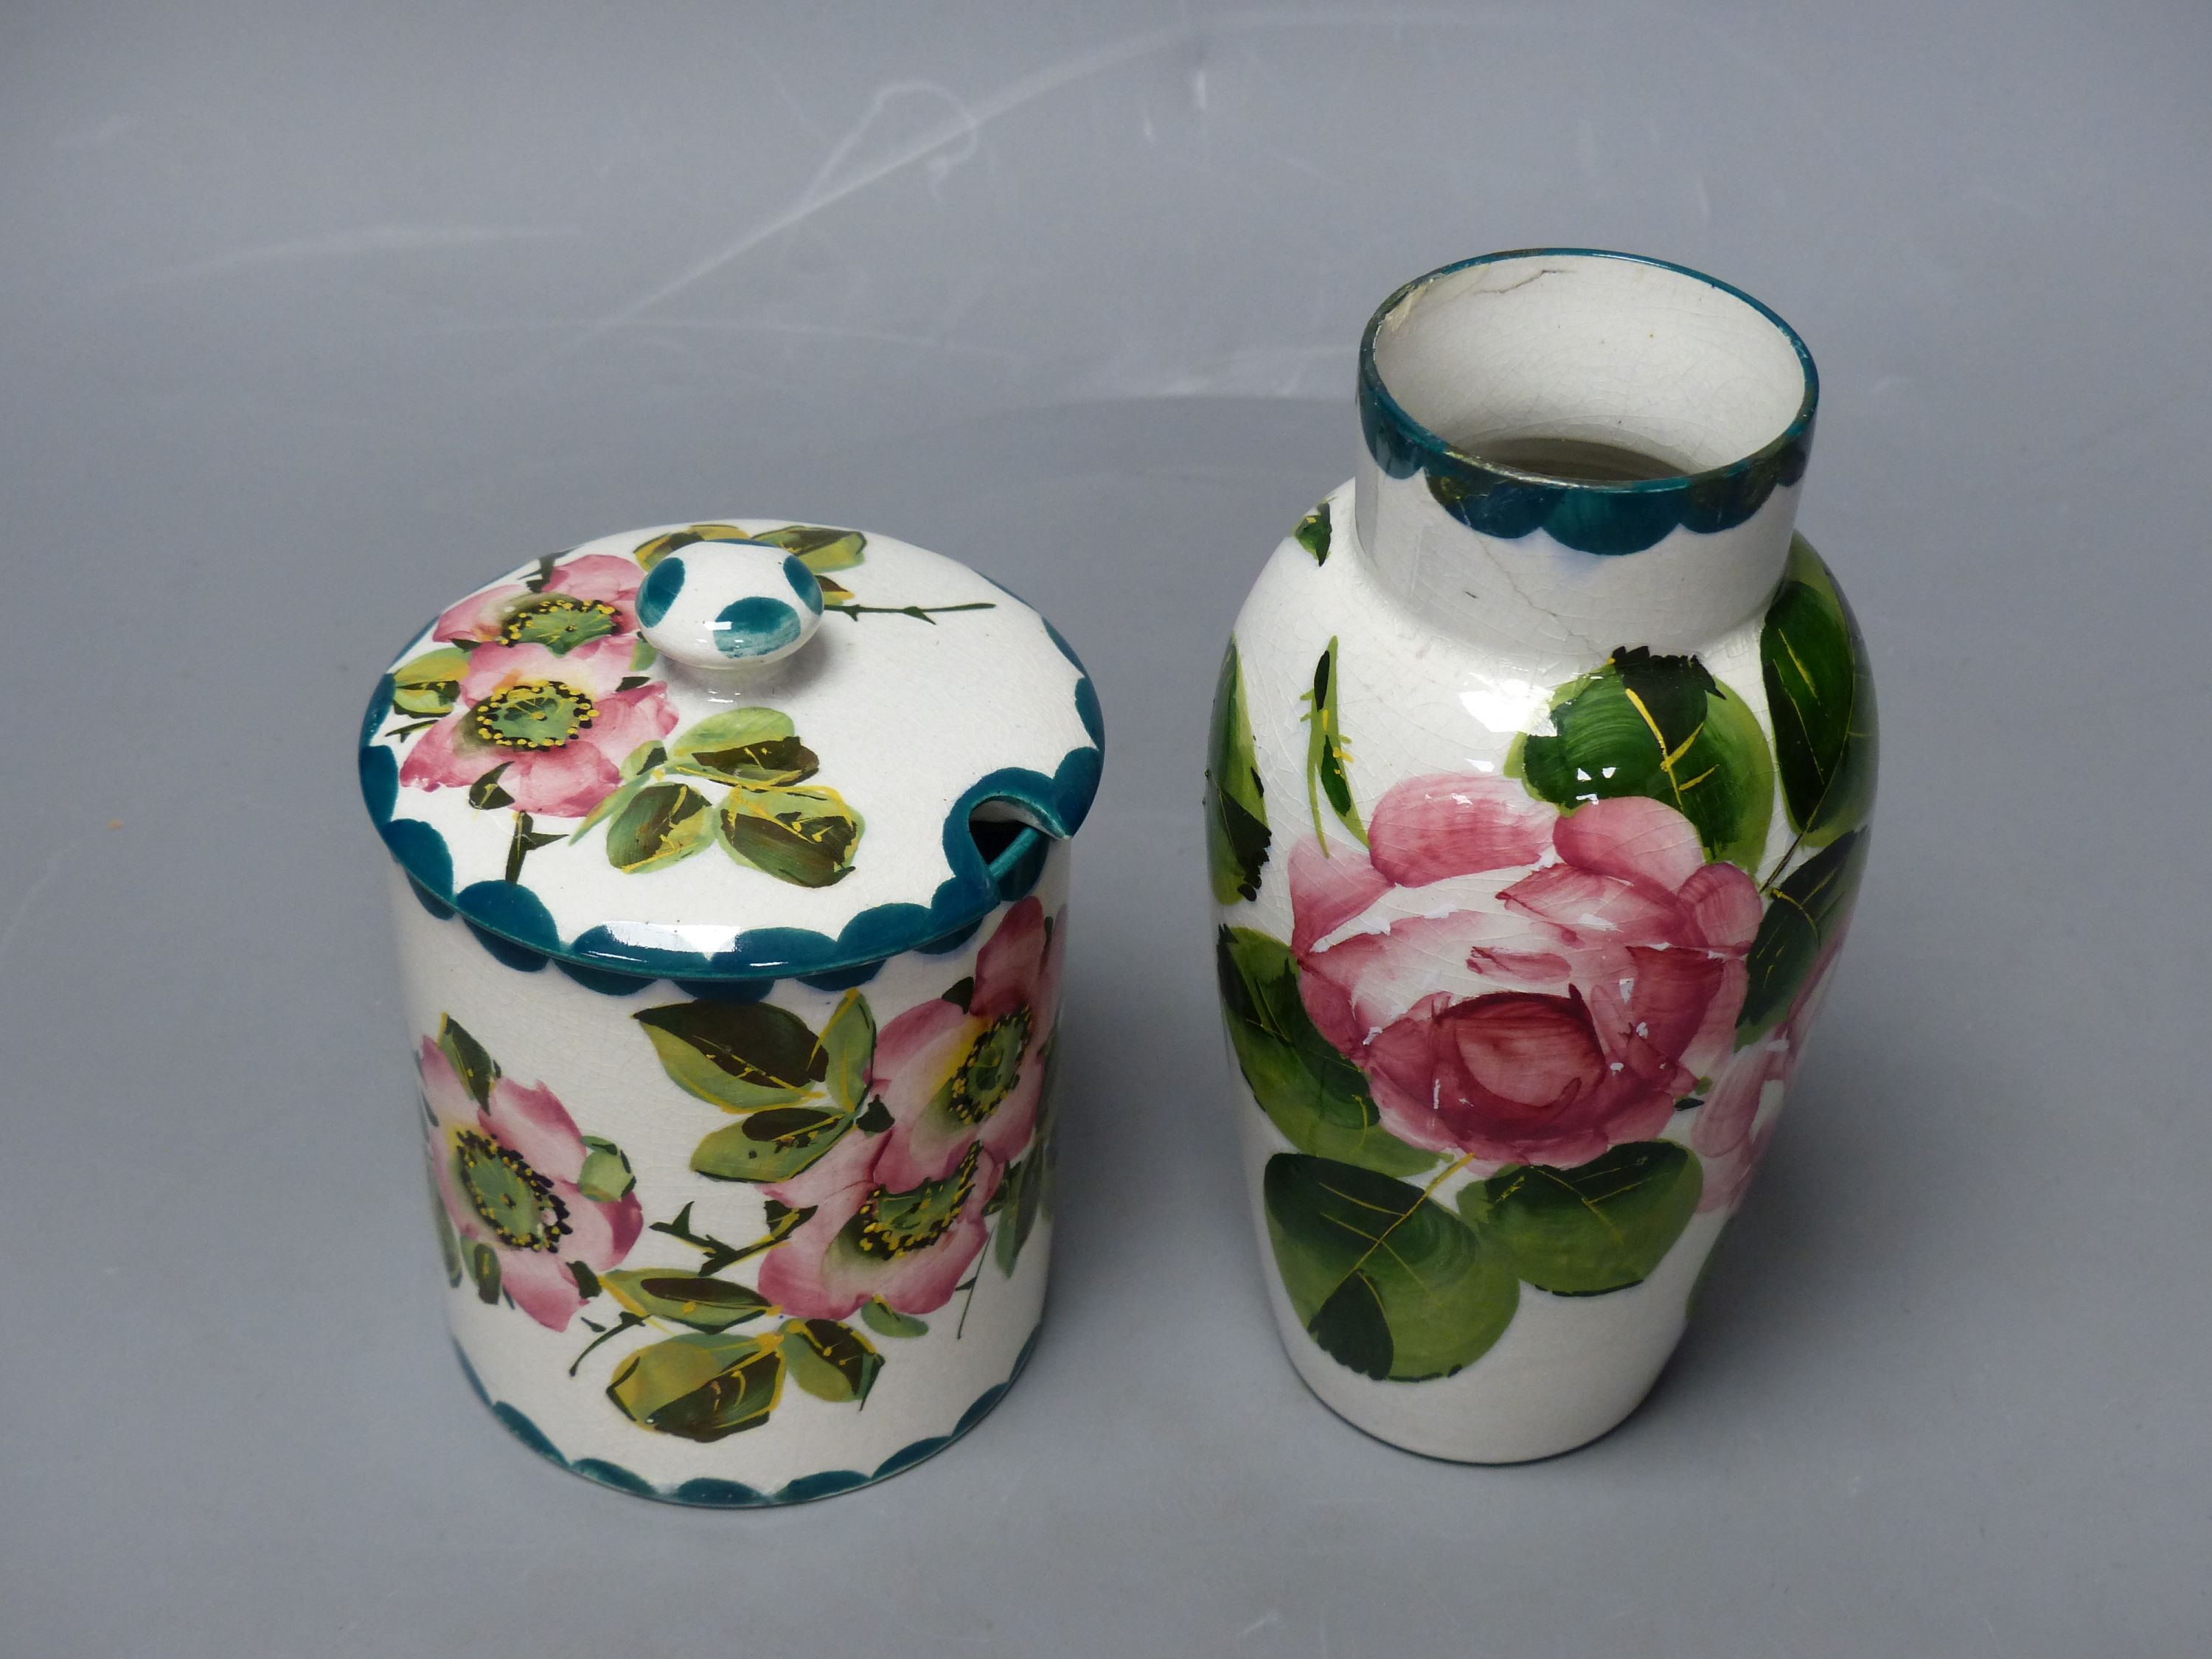 A Wemyss cabbage rose vase and an apple blossom sugar pot, tallest 16cm - Image 3 of 5